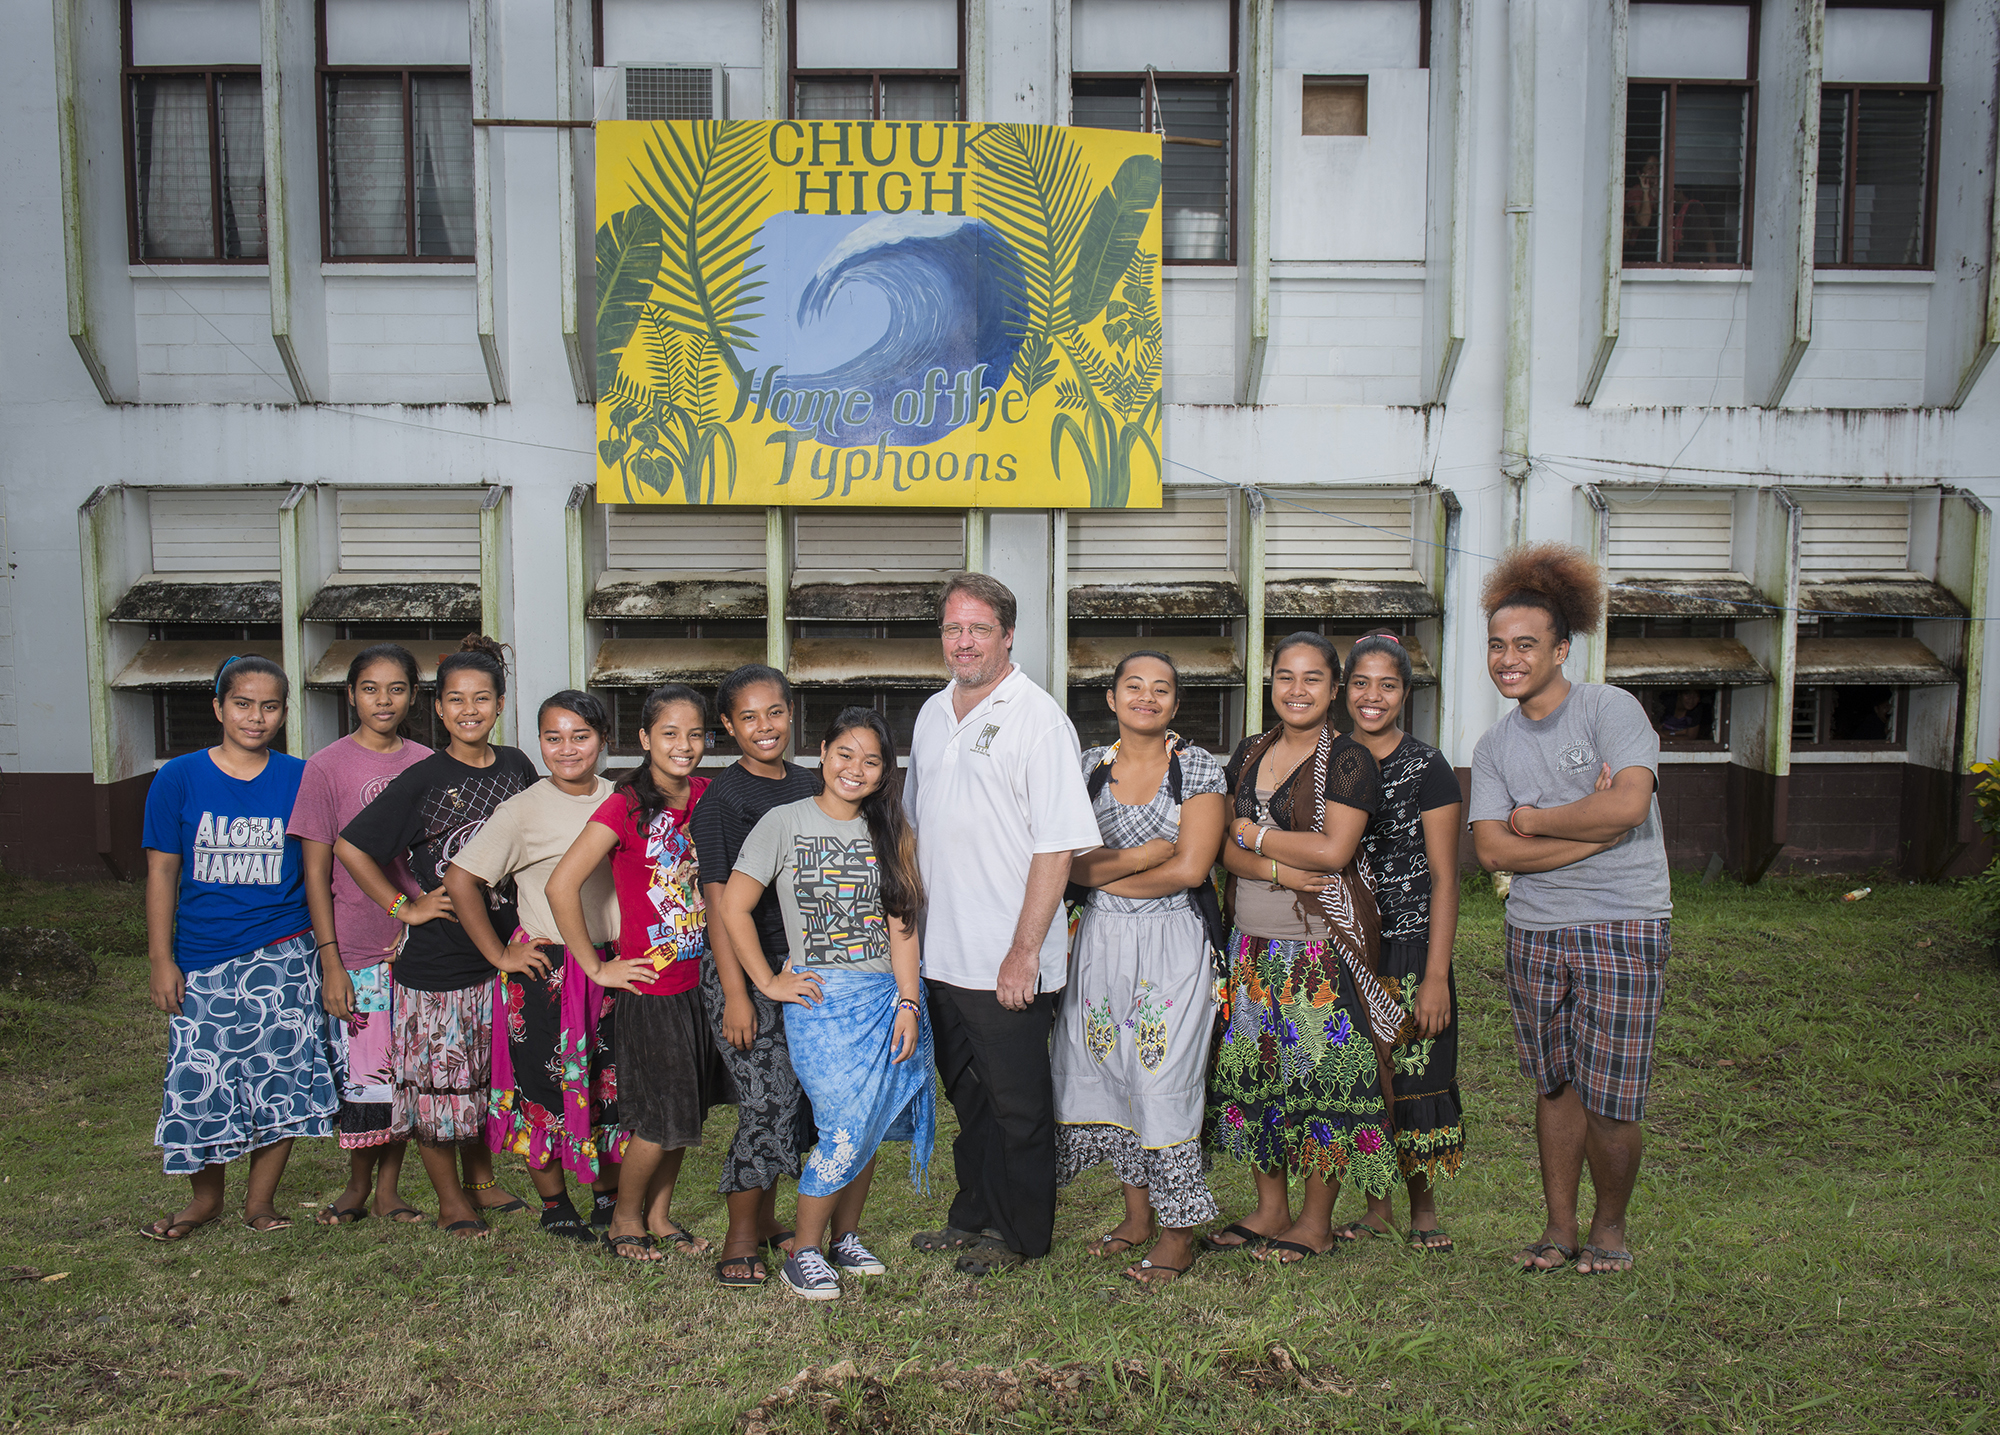 <p>Chuuk High School Principal Paul Hadik tries to stretch limited financial resources from the government to educate his students. The school recently openeda kindergarten program.</p>